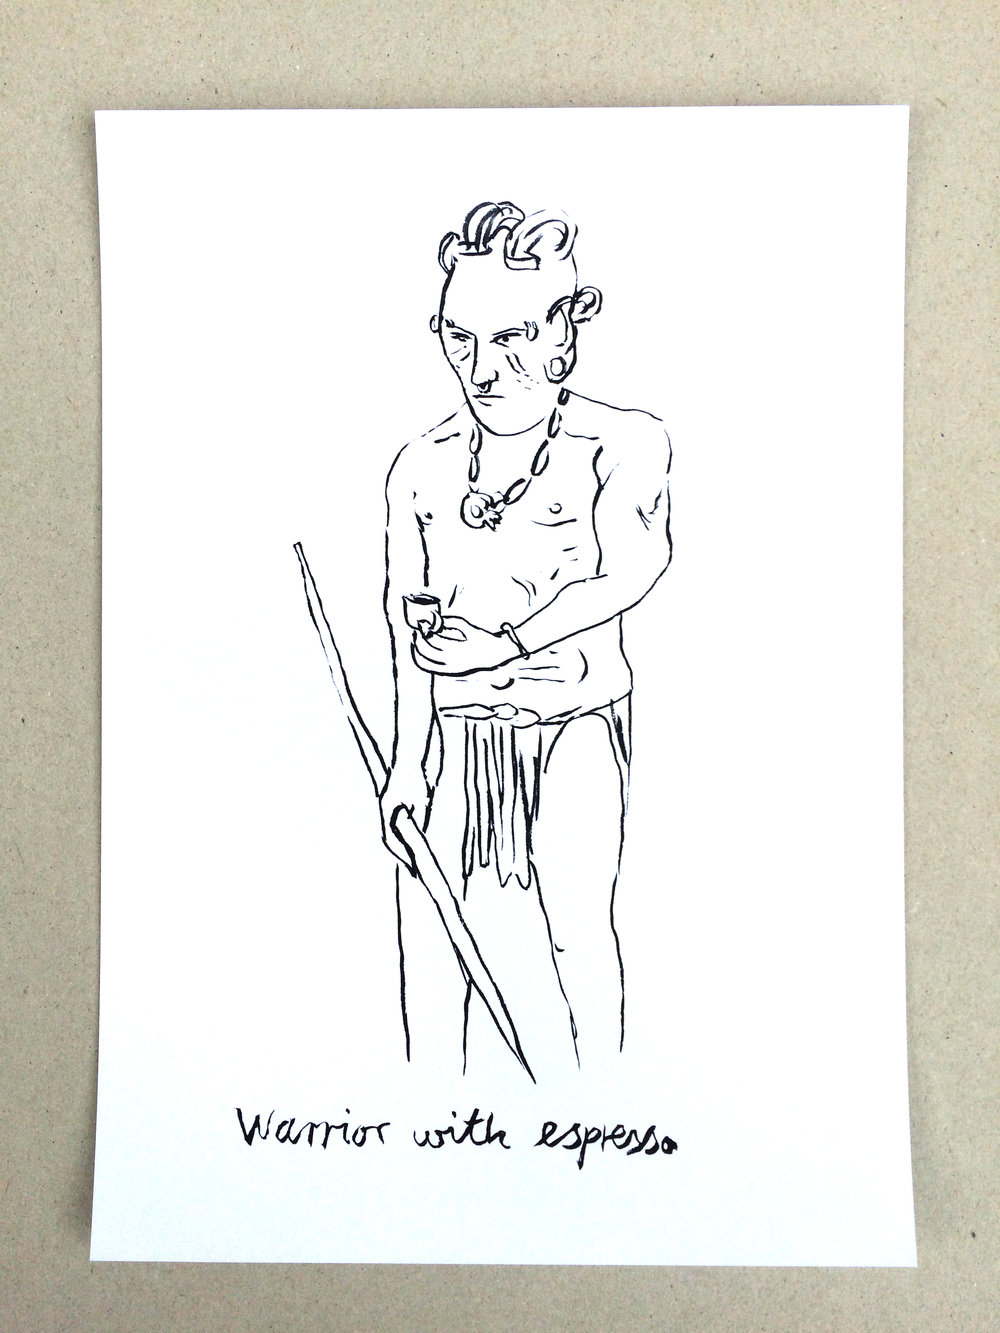 Markus Vater, edition on paper drawings. A4 signed, 25 GBP